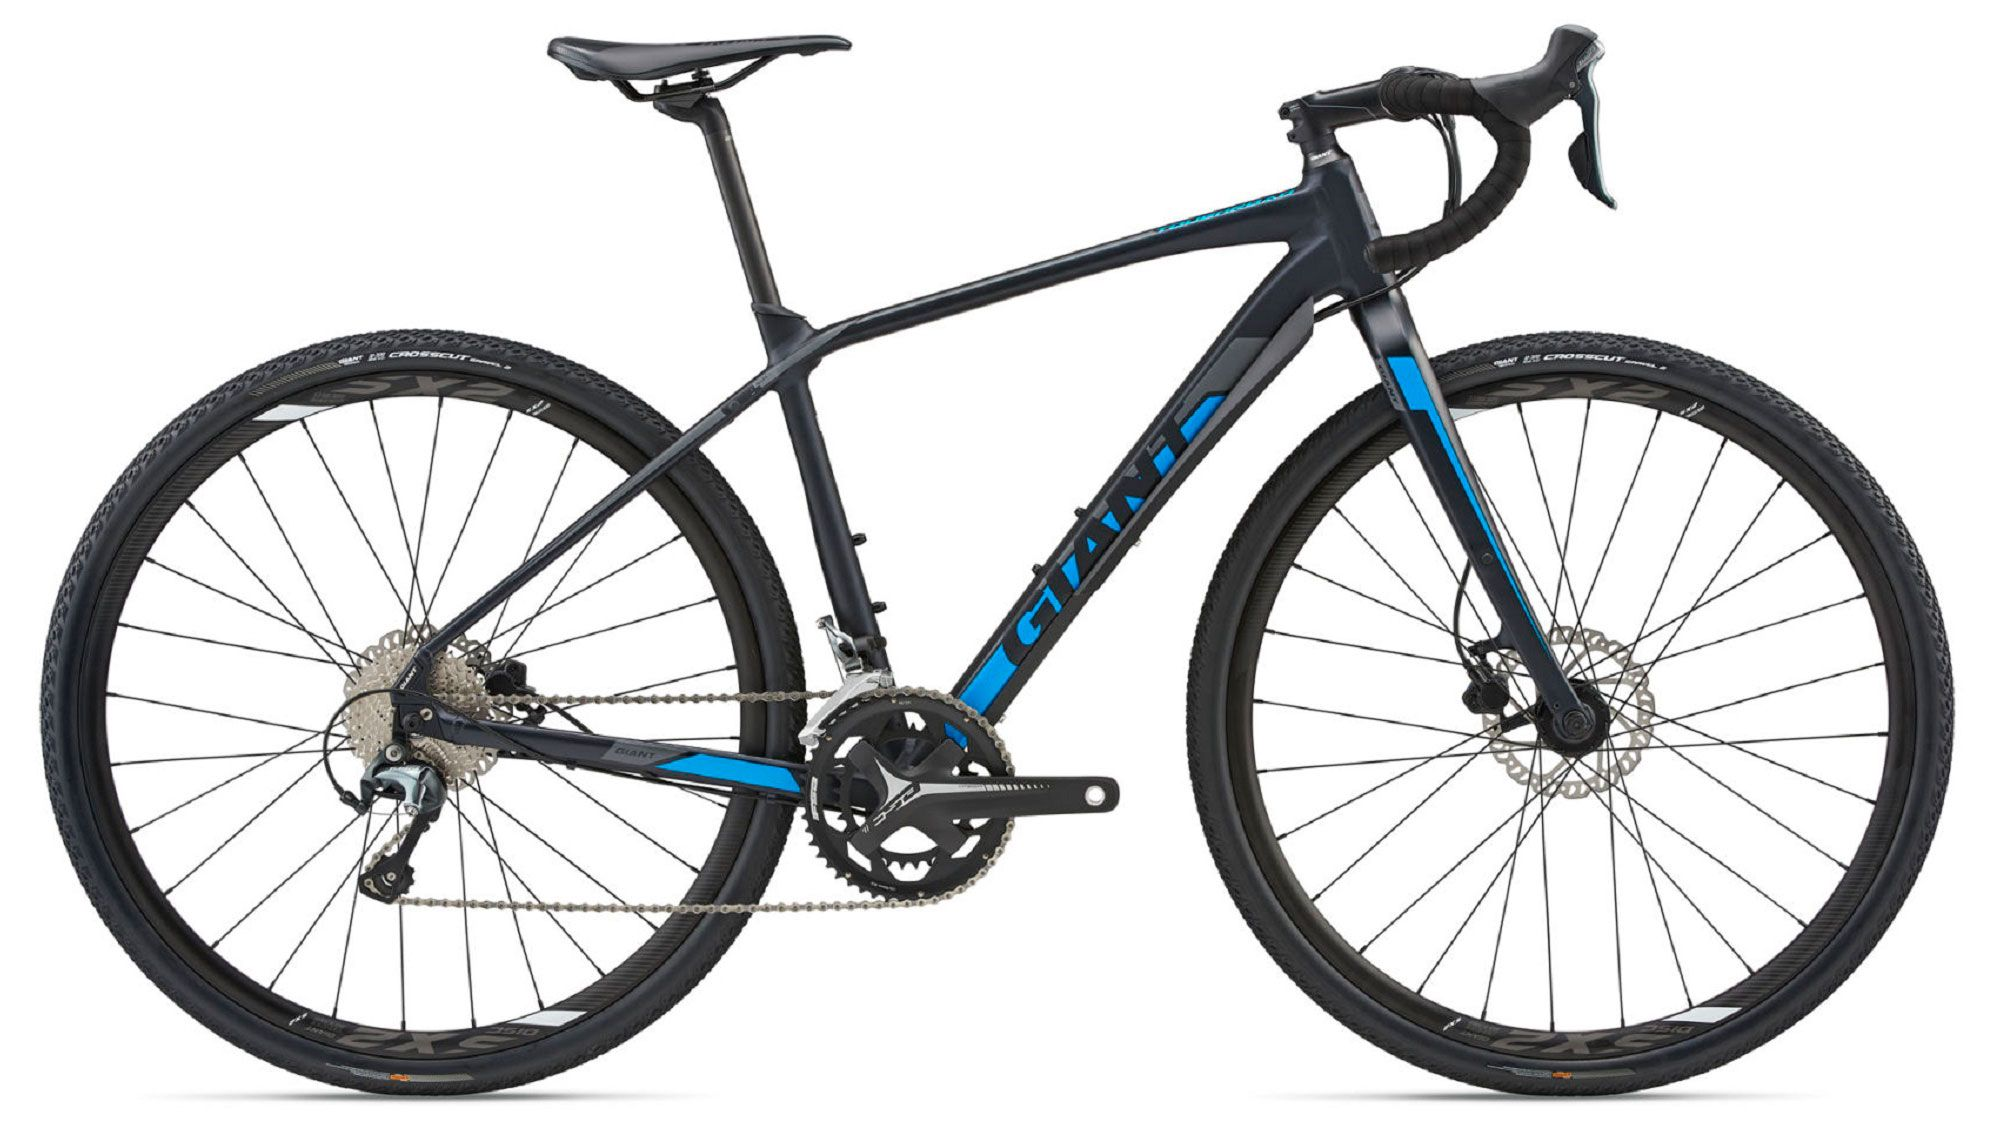 Велосипед Giant ToughRoad SLR GX 1 2018 велосипед giant toughroad slr 1 2018